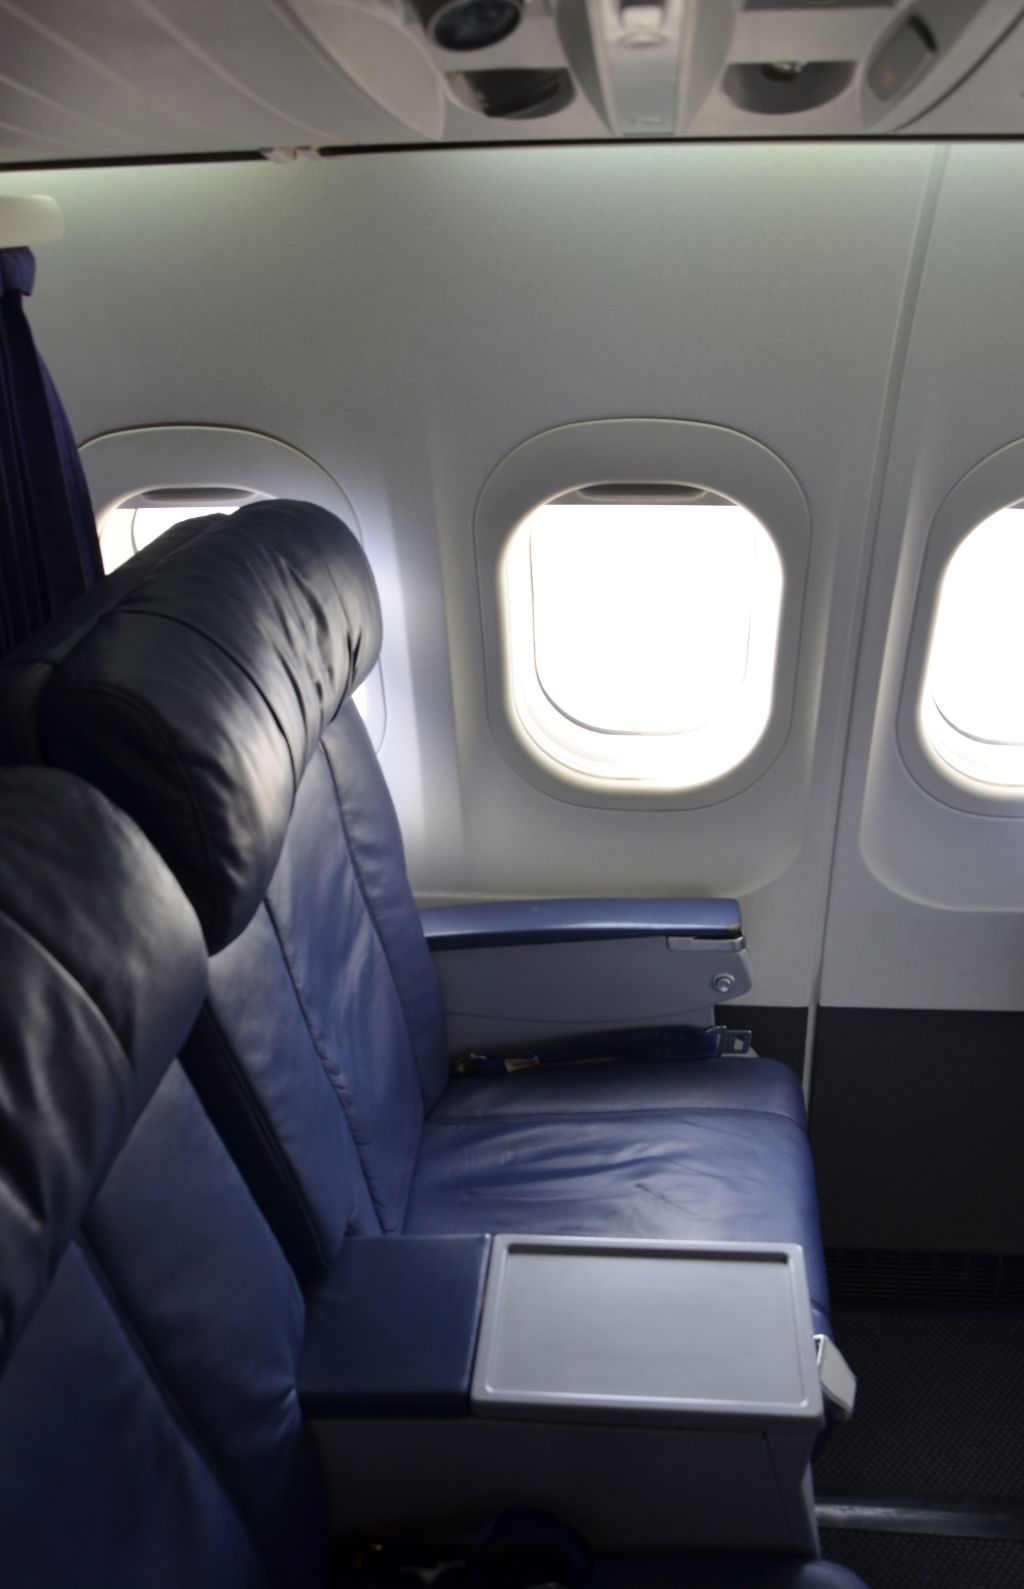 Hawaiian Airlines Boeing 717 200 first class cabin 2 2 seats photos